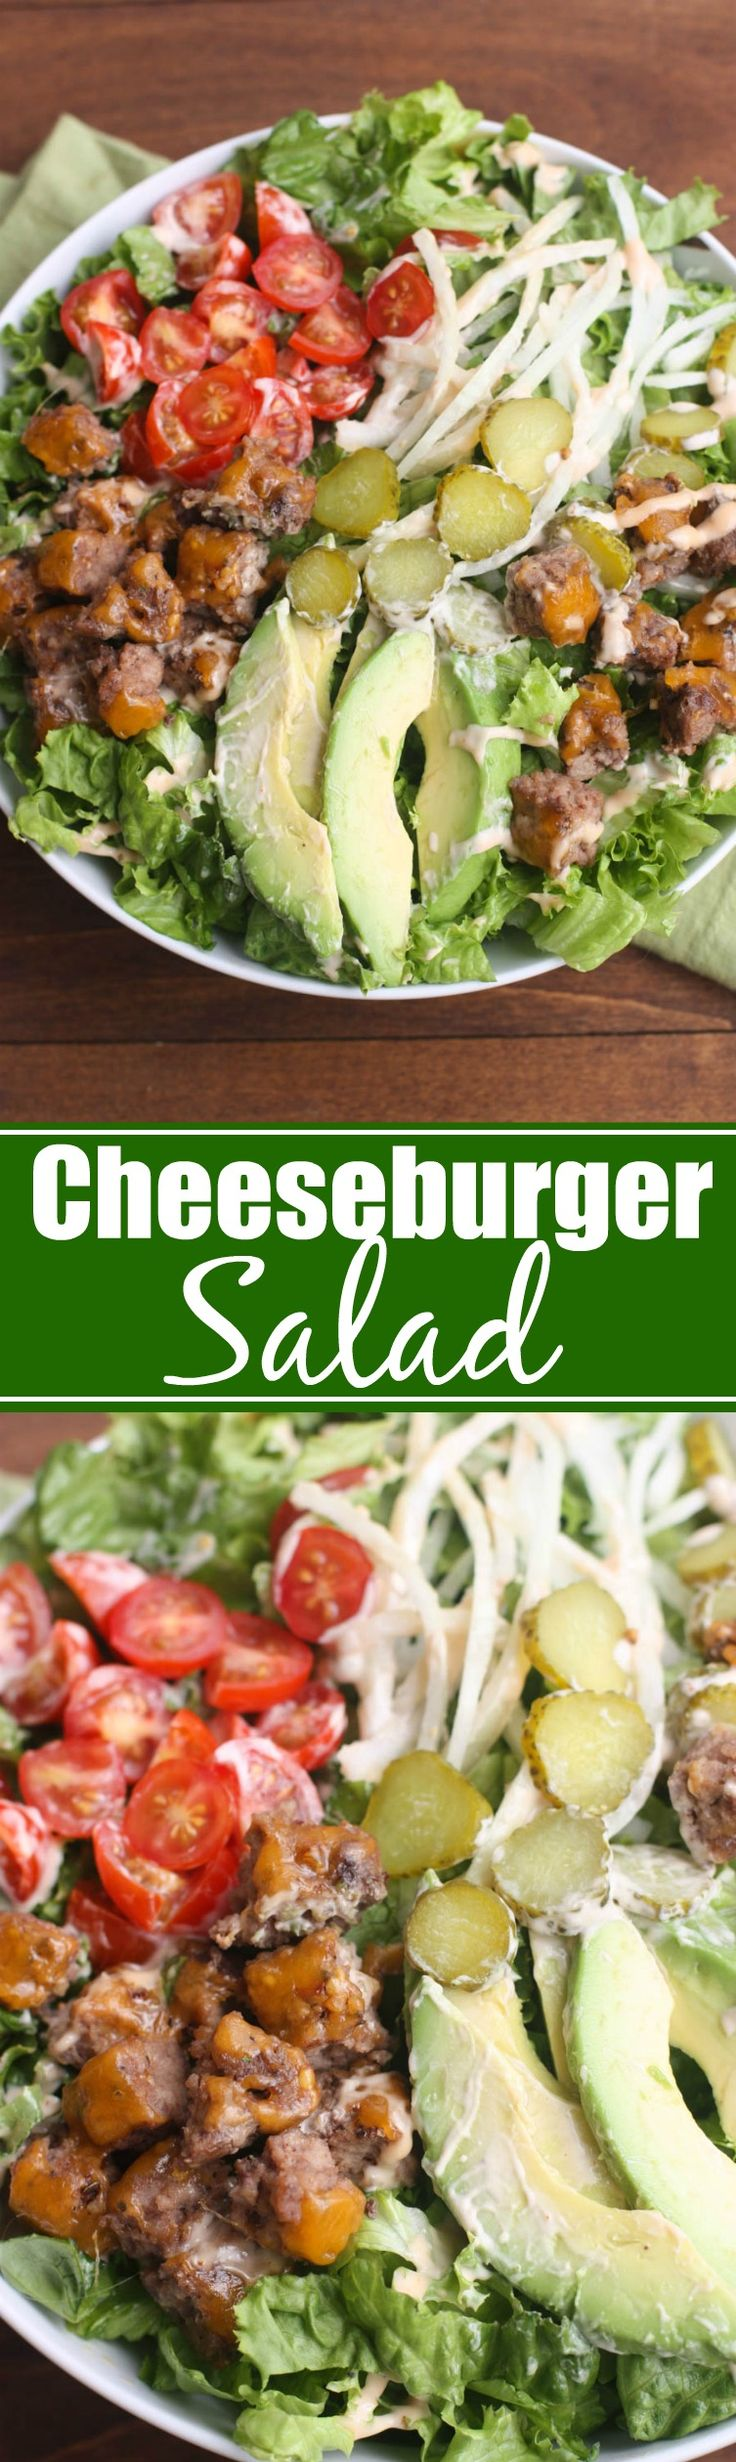 My family loves this Cheeseburger Salad. All of our favorite burger toppings layered onto a delicious, hearty salad. | Tastes Better From Scratch